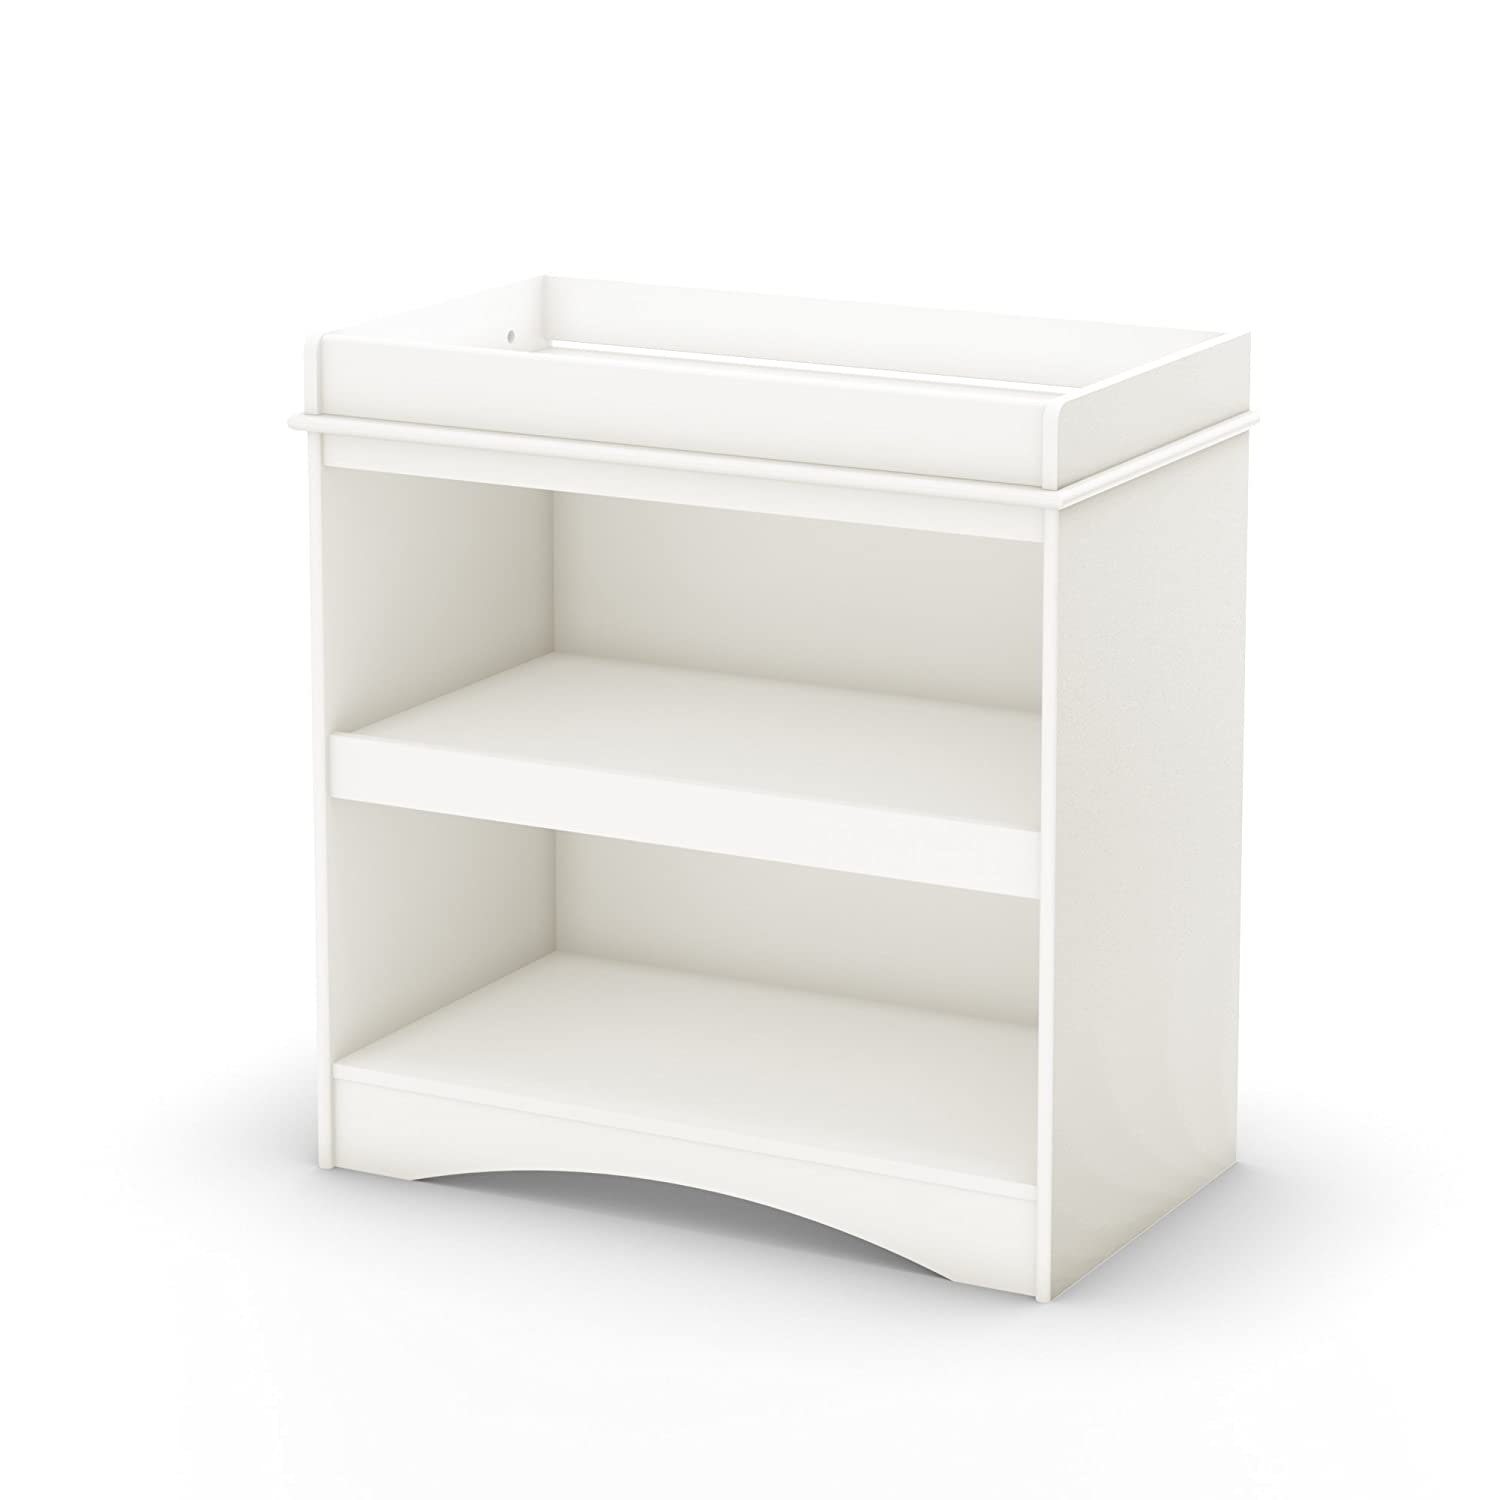 South Shore Furniture South Shore Peak-a-Boo Collection Changing Table, White 2260334